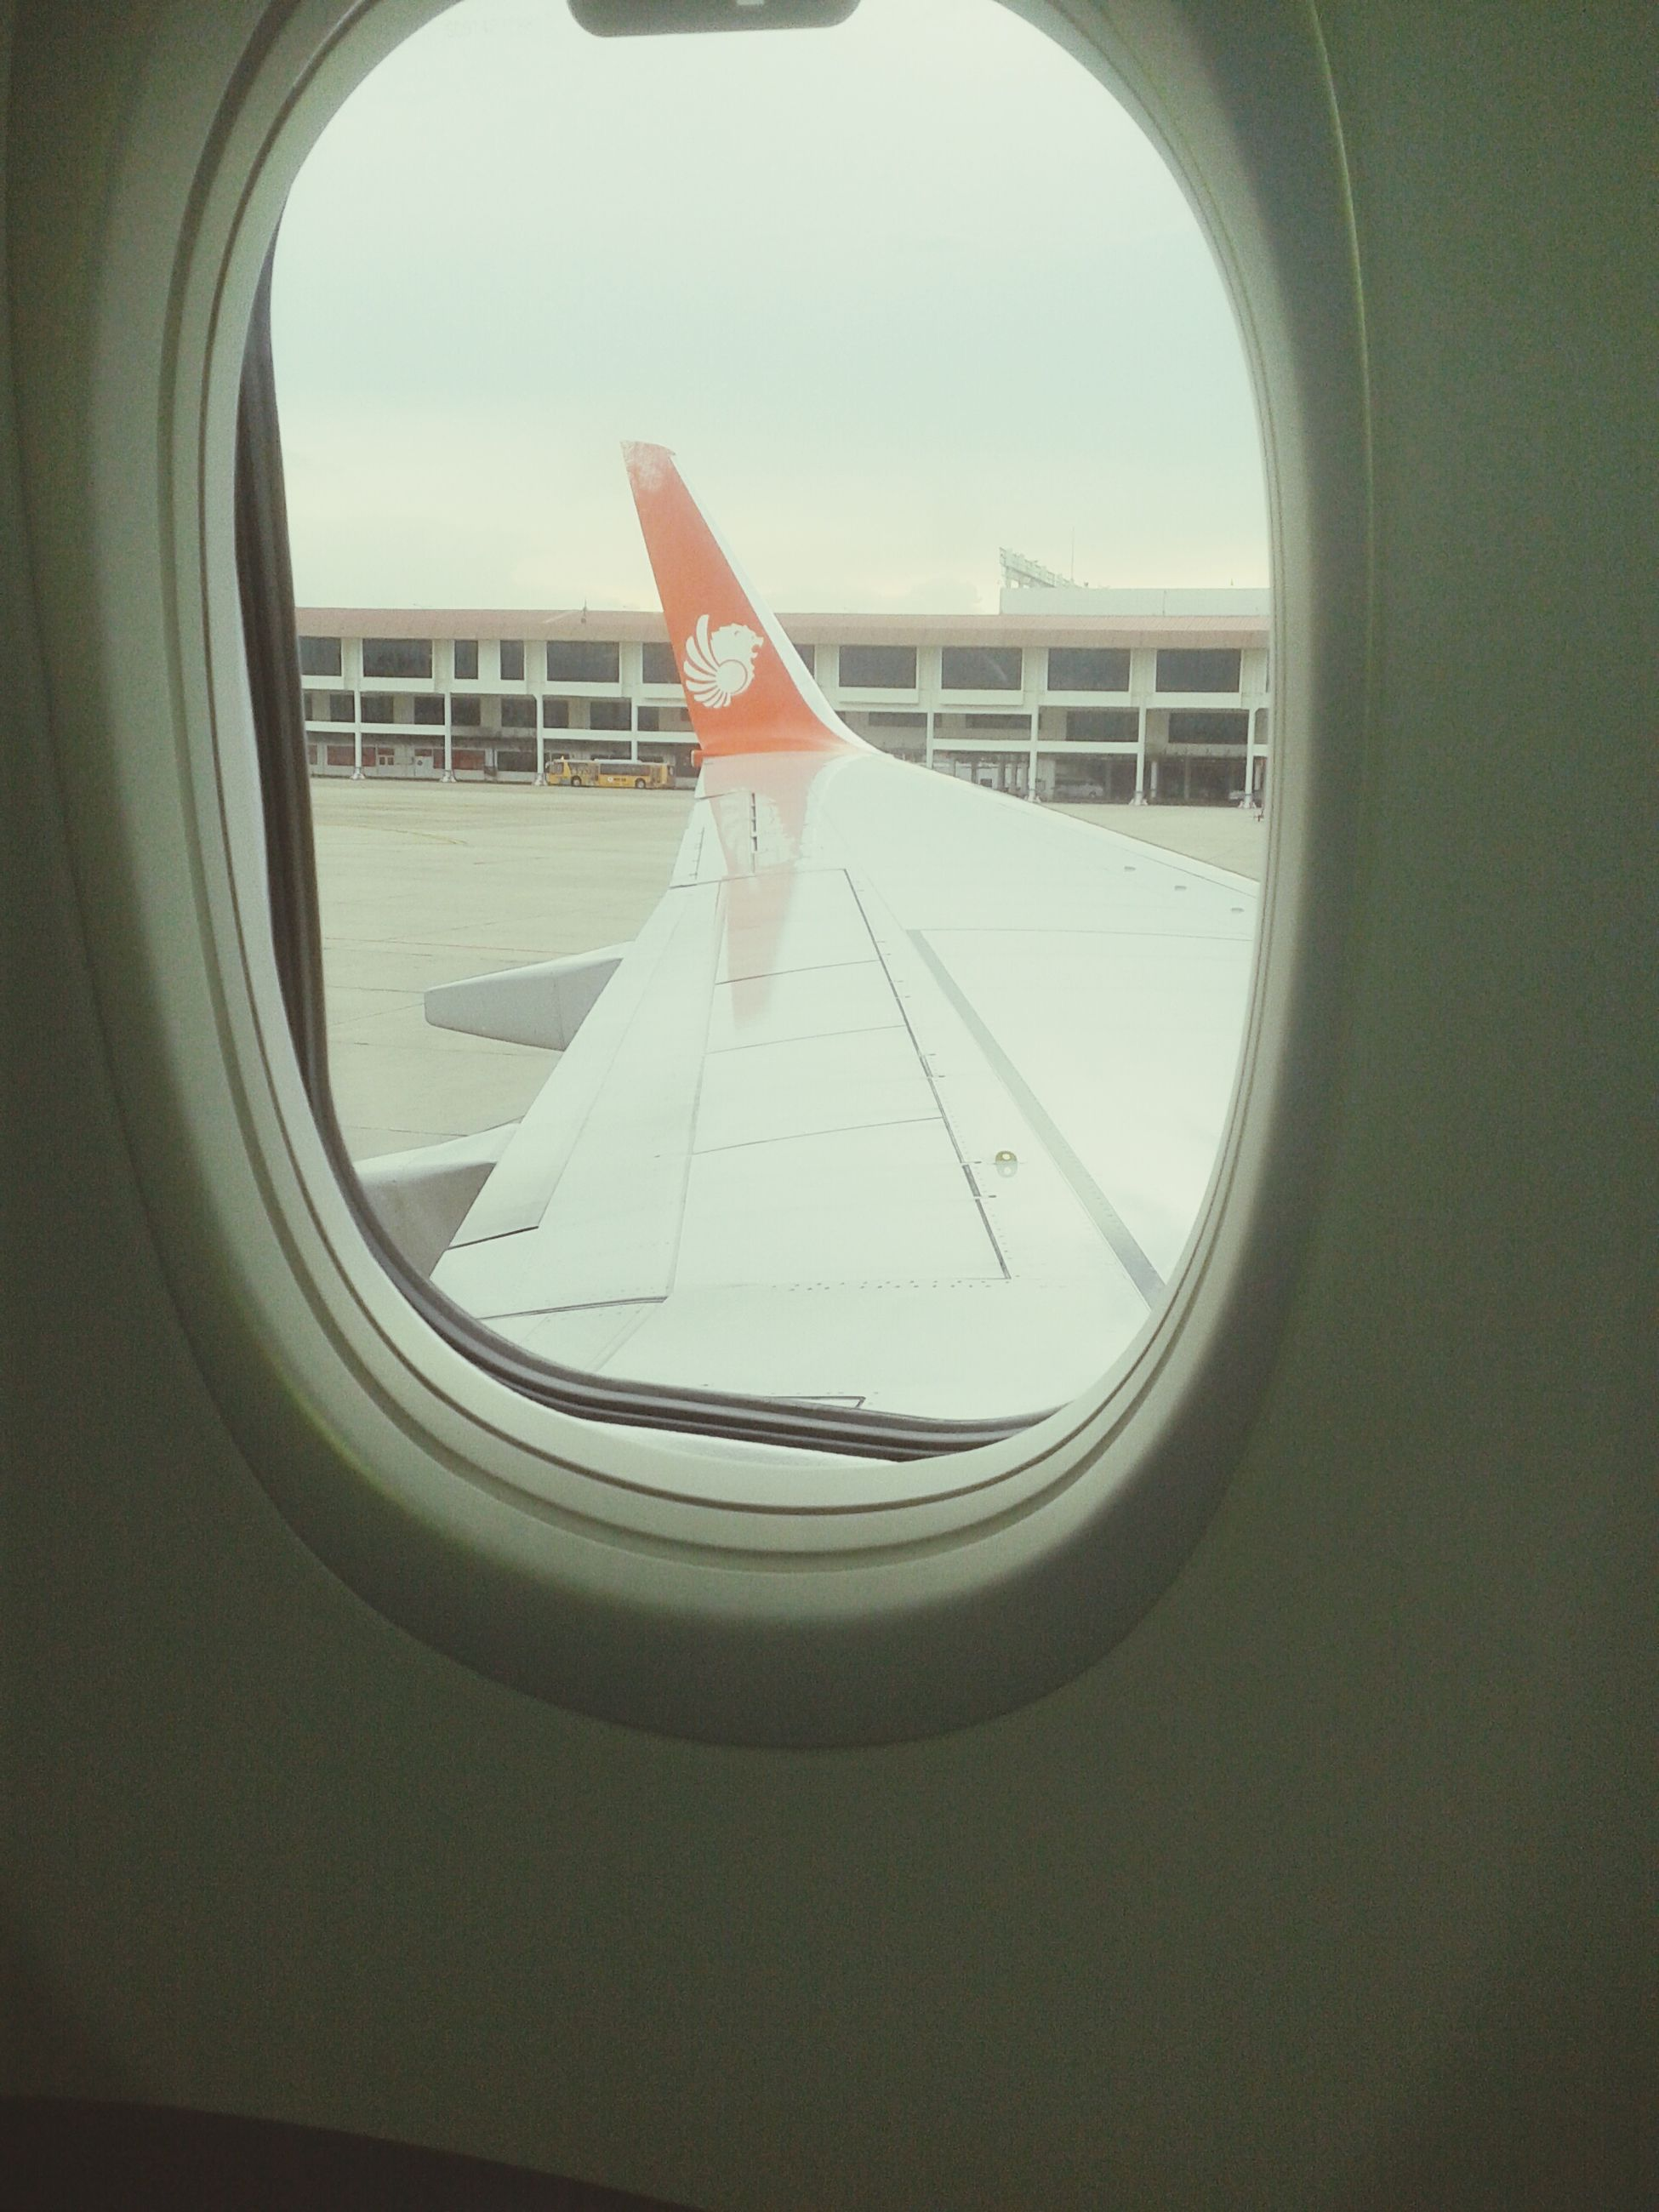 transportation, window, mode of transport, airplane, glass - material, transparent, air vehicle, indoors, vehicle interior, sky, built structure, architecture, travel, part of, cropped, day, journey, clear sky, geometric shape, reflection